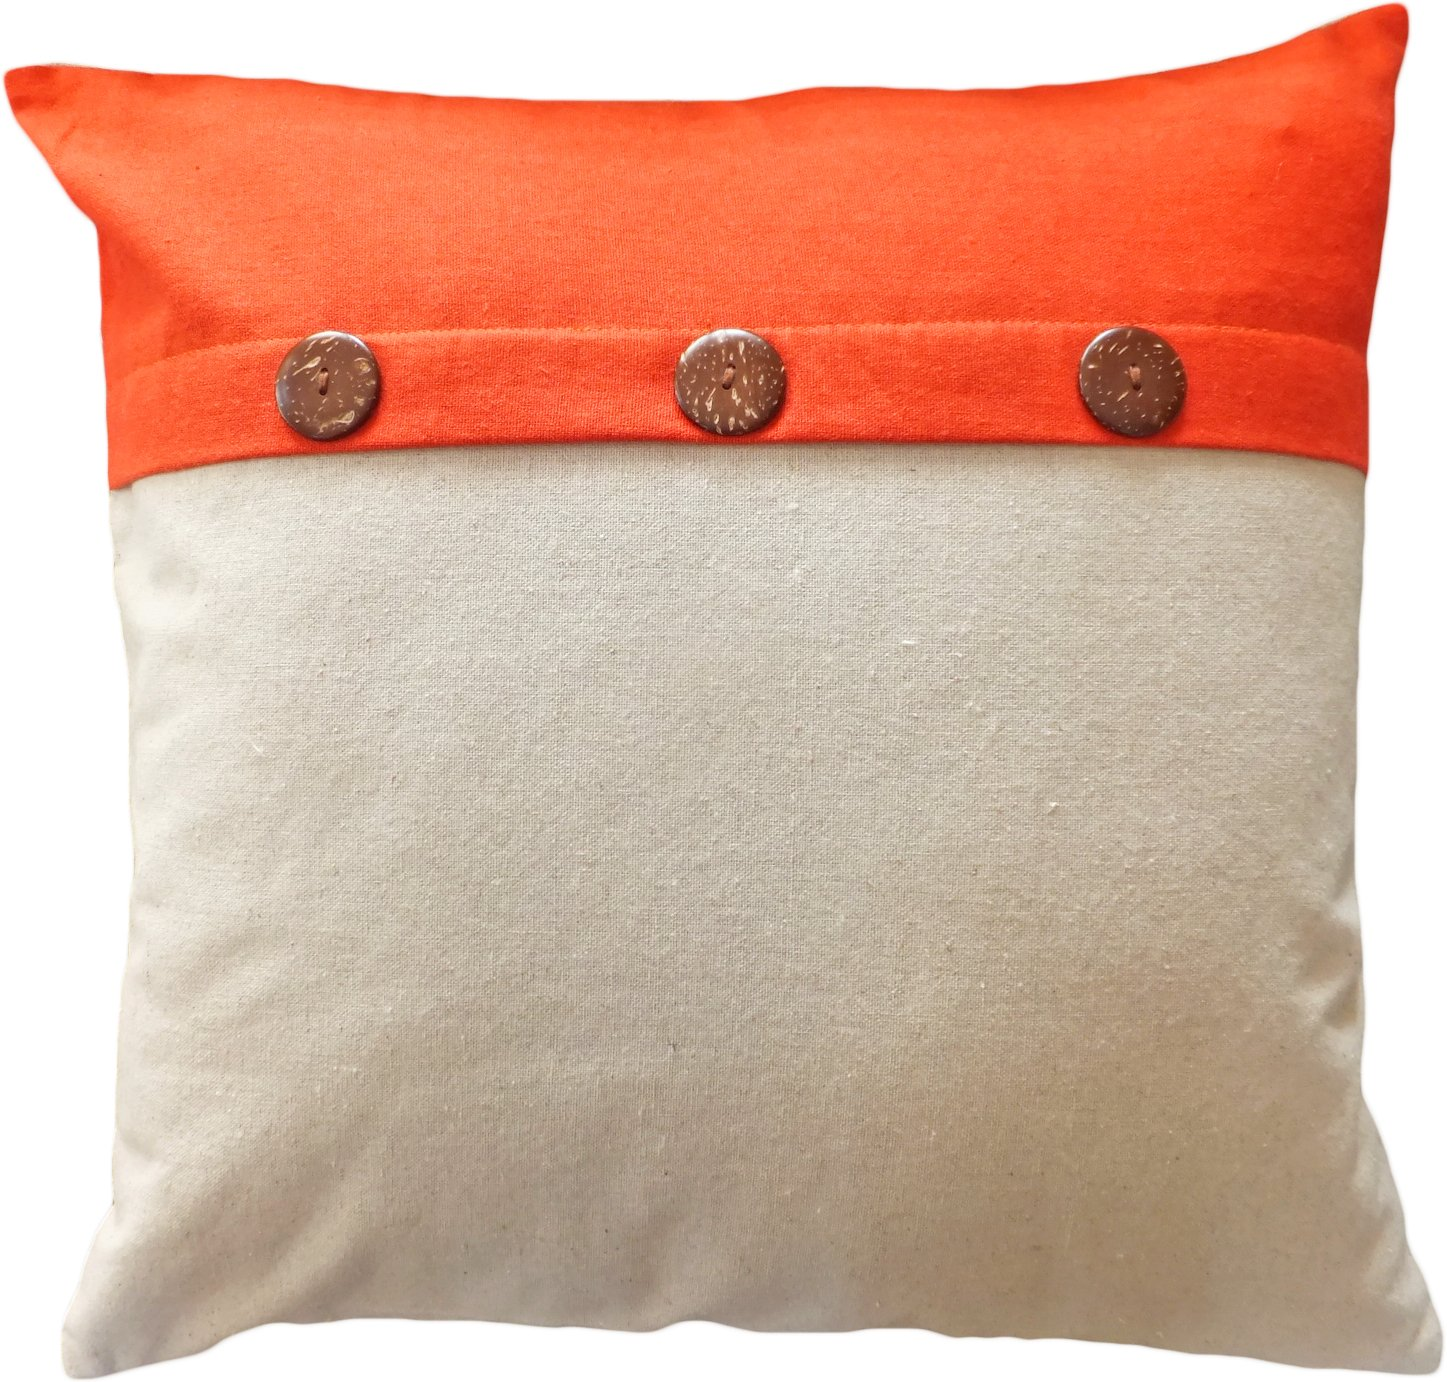 Amazon.com: Decorative Coconut Buttons Throw Pillow COVER 20 ...